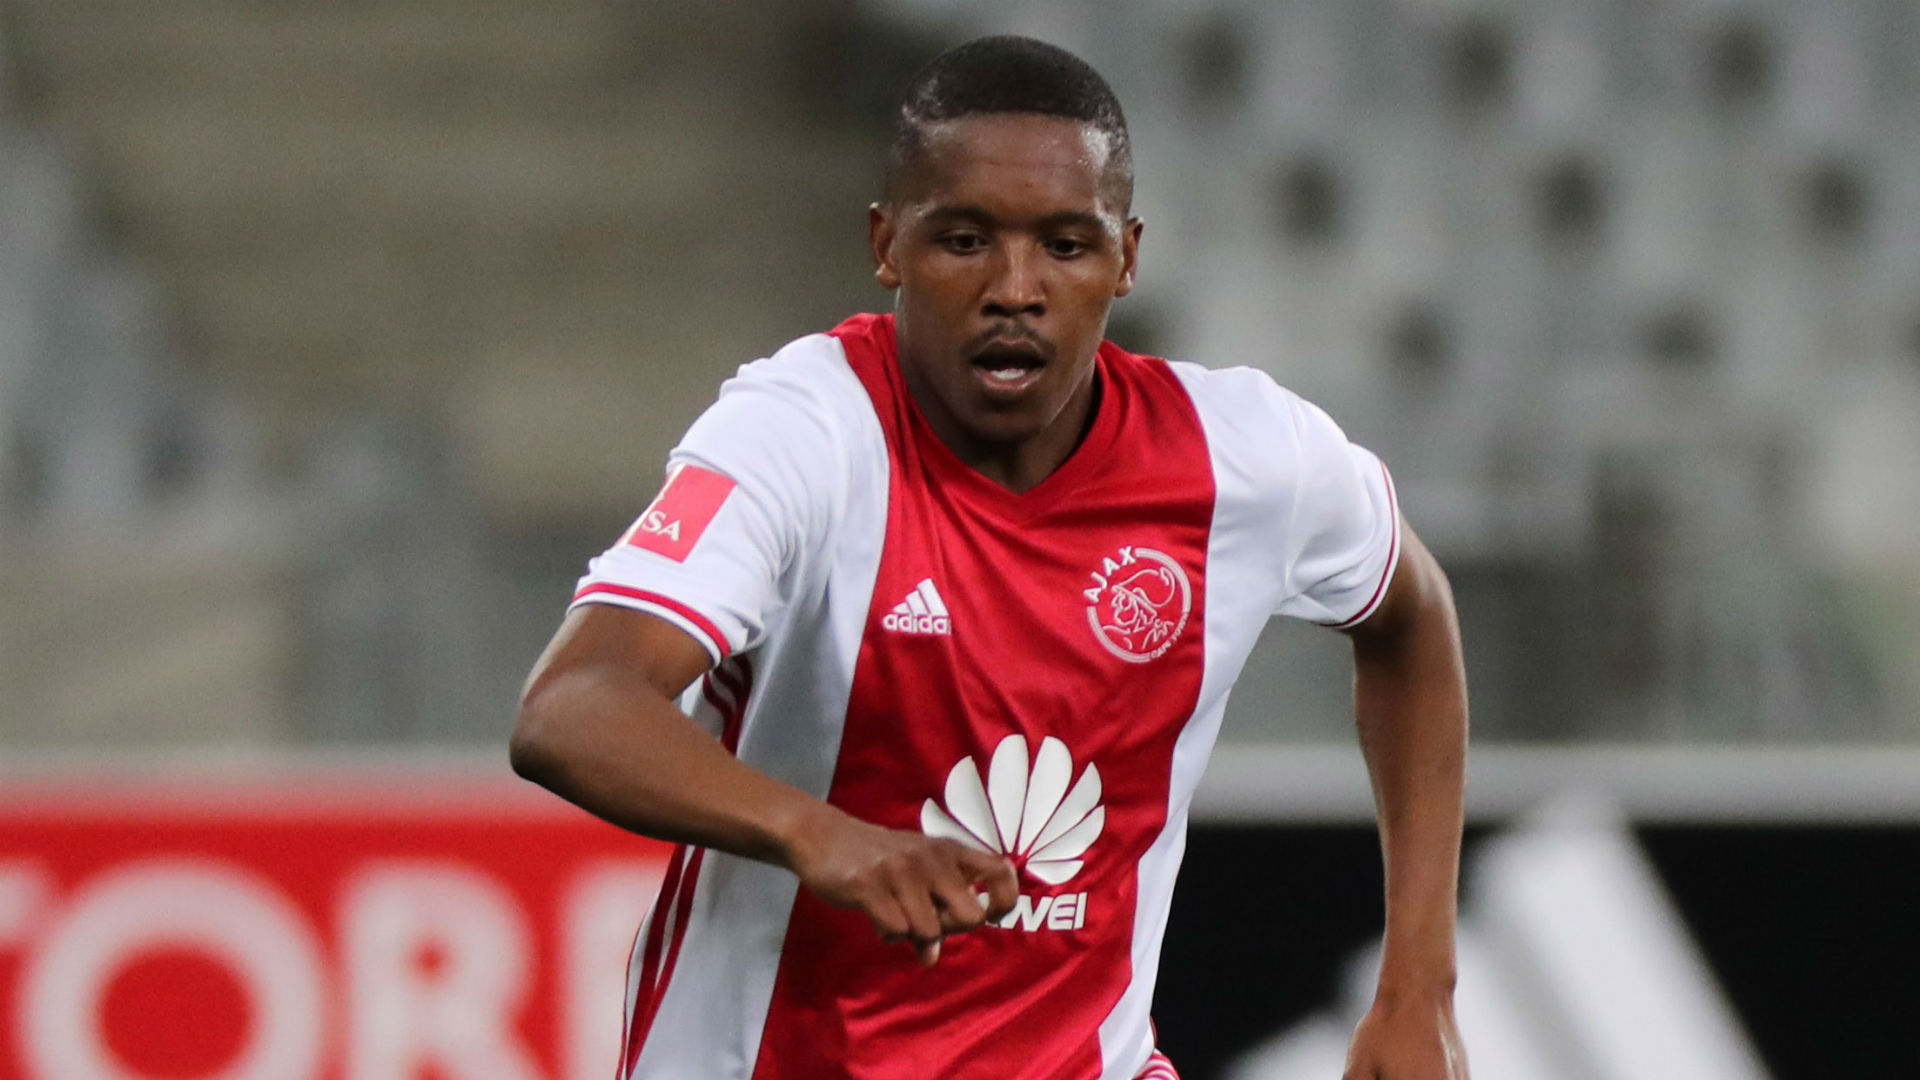 There is no 'philosophy' of youth development at Orlando Pirates - Lebohang Mokoena